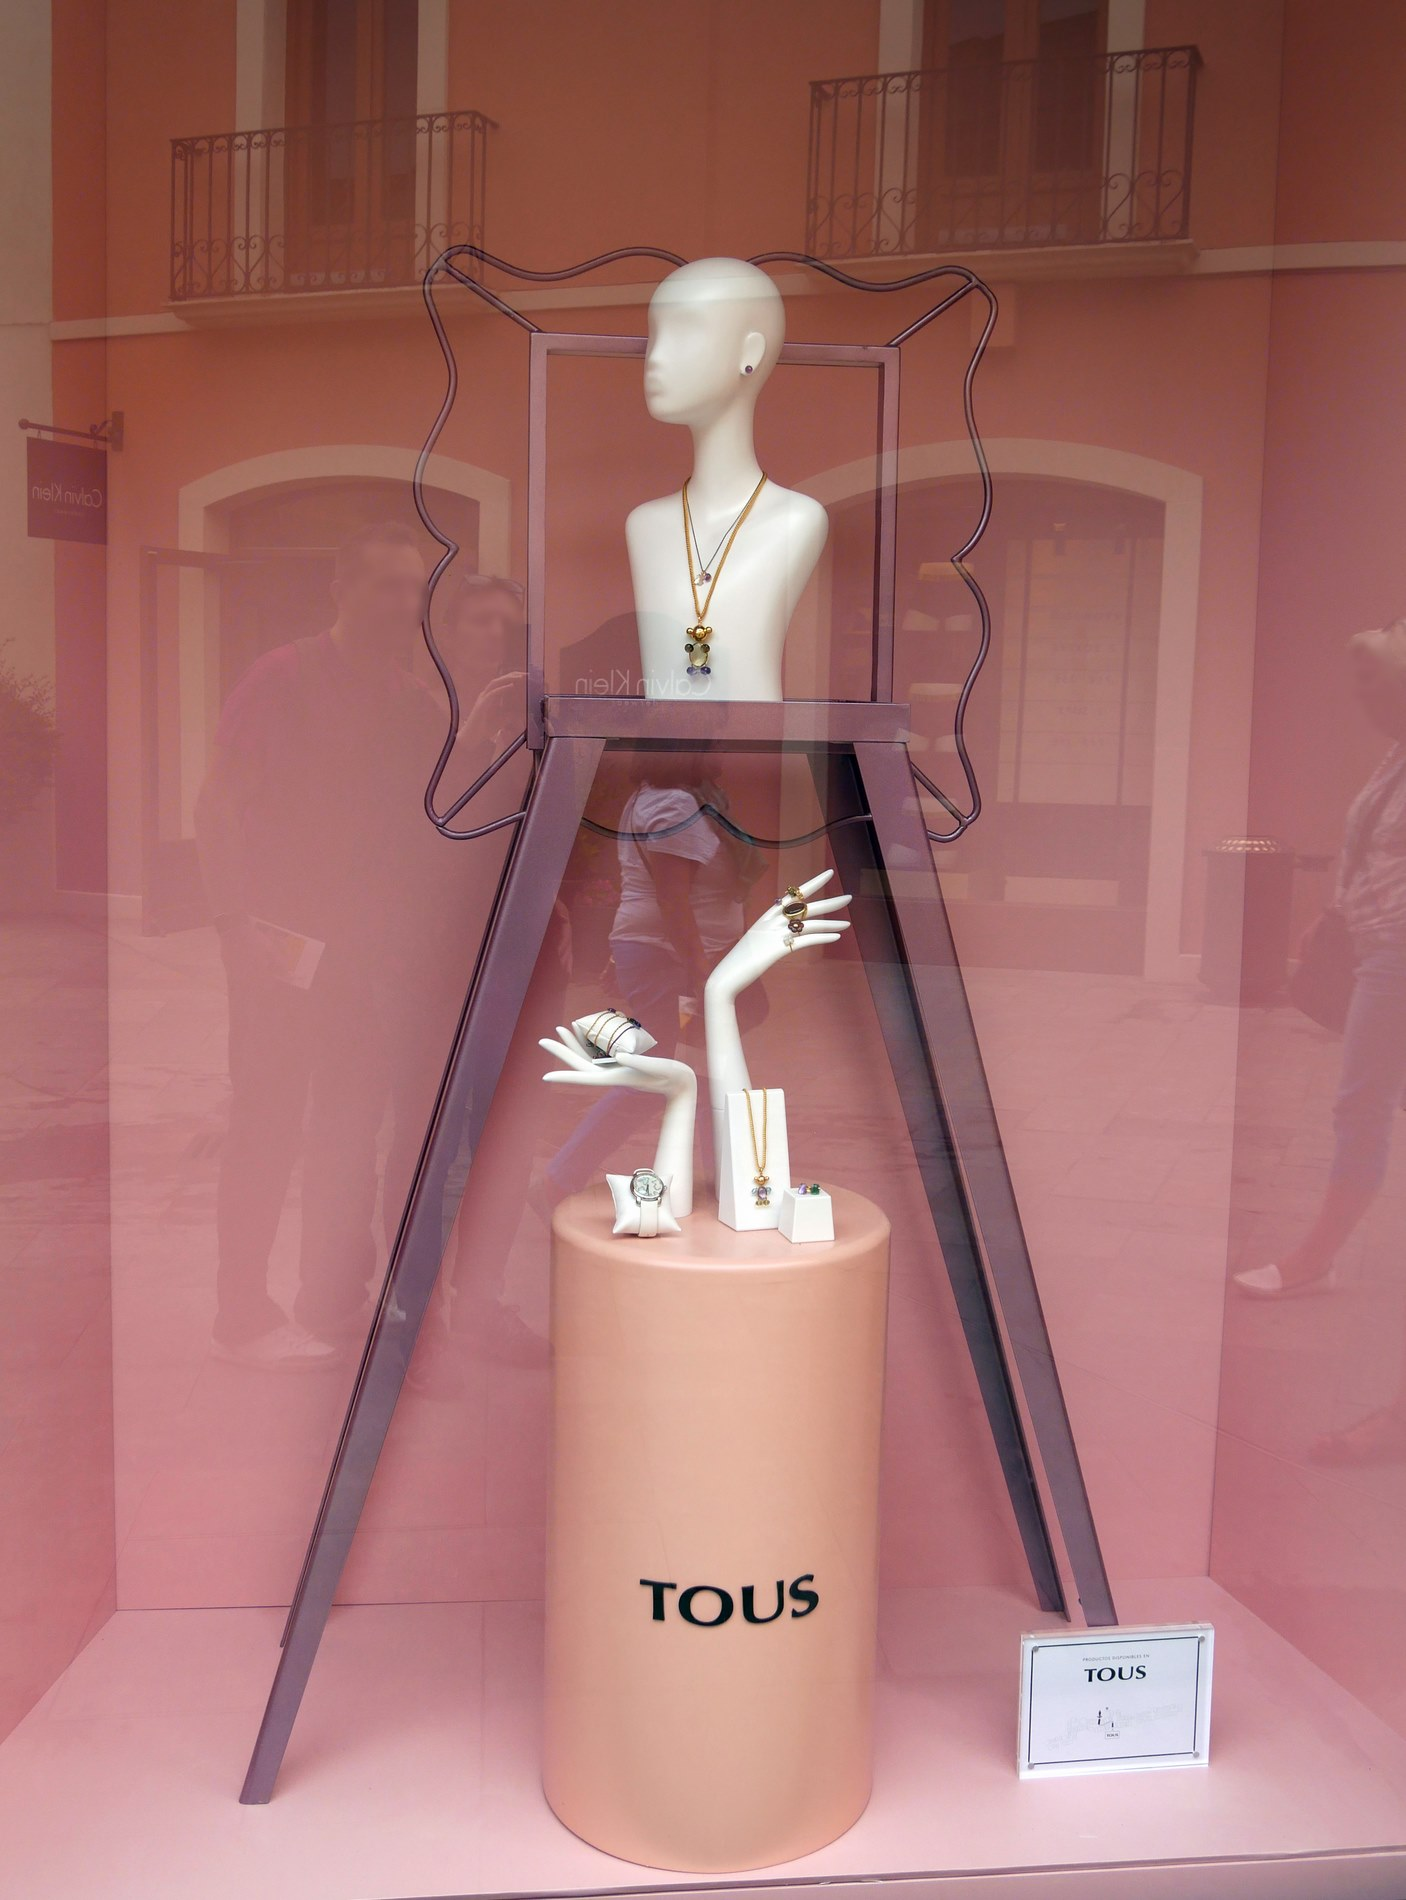 vitrine tous roca village barcelon -_juliesliberties